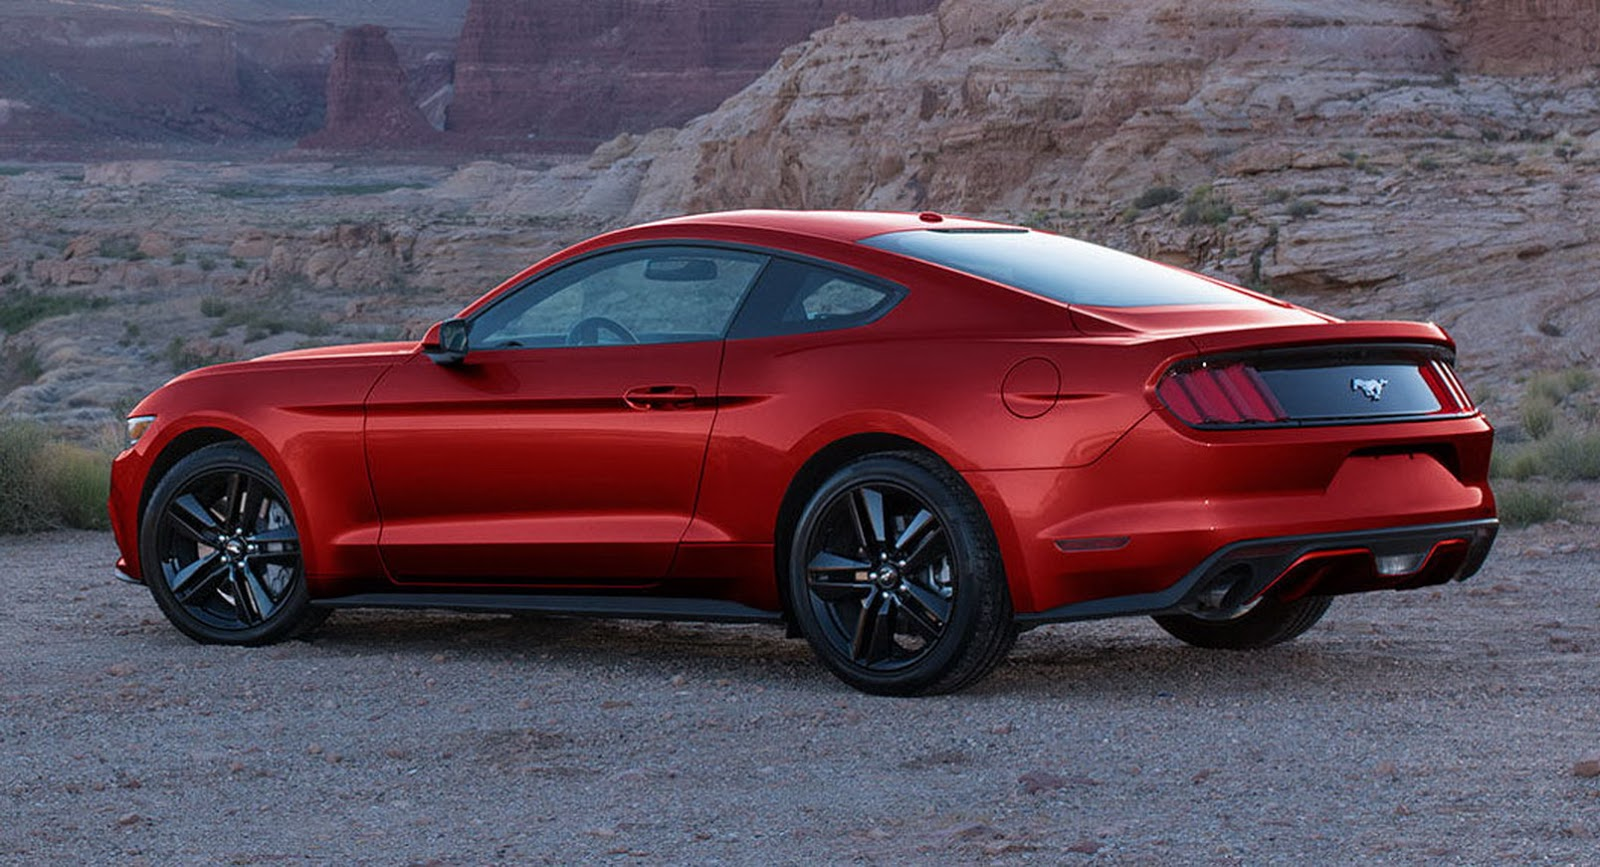 2017 Vs 2018 Mustang >> 2018 Vs 2017 Ford Mustang: Poll & Photo Comparison | Carscoops